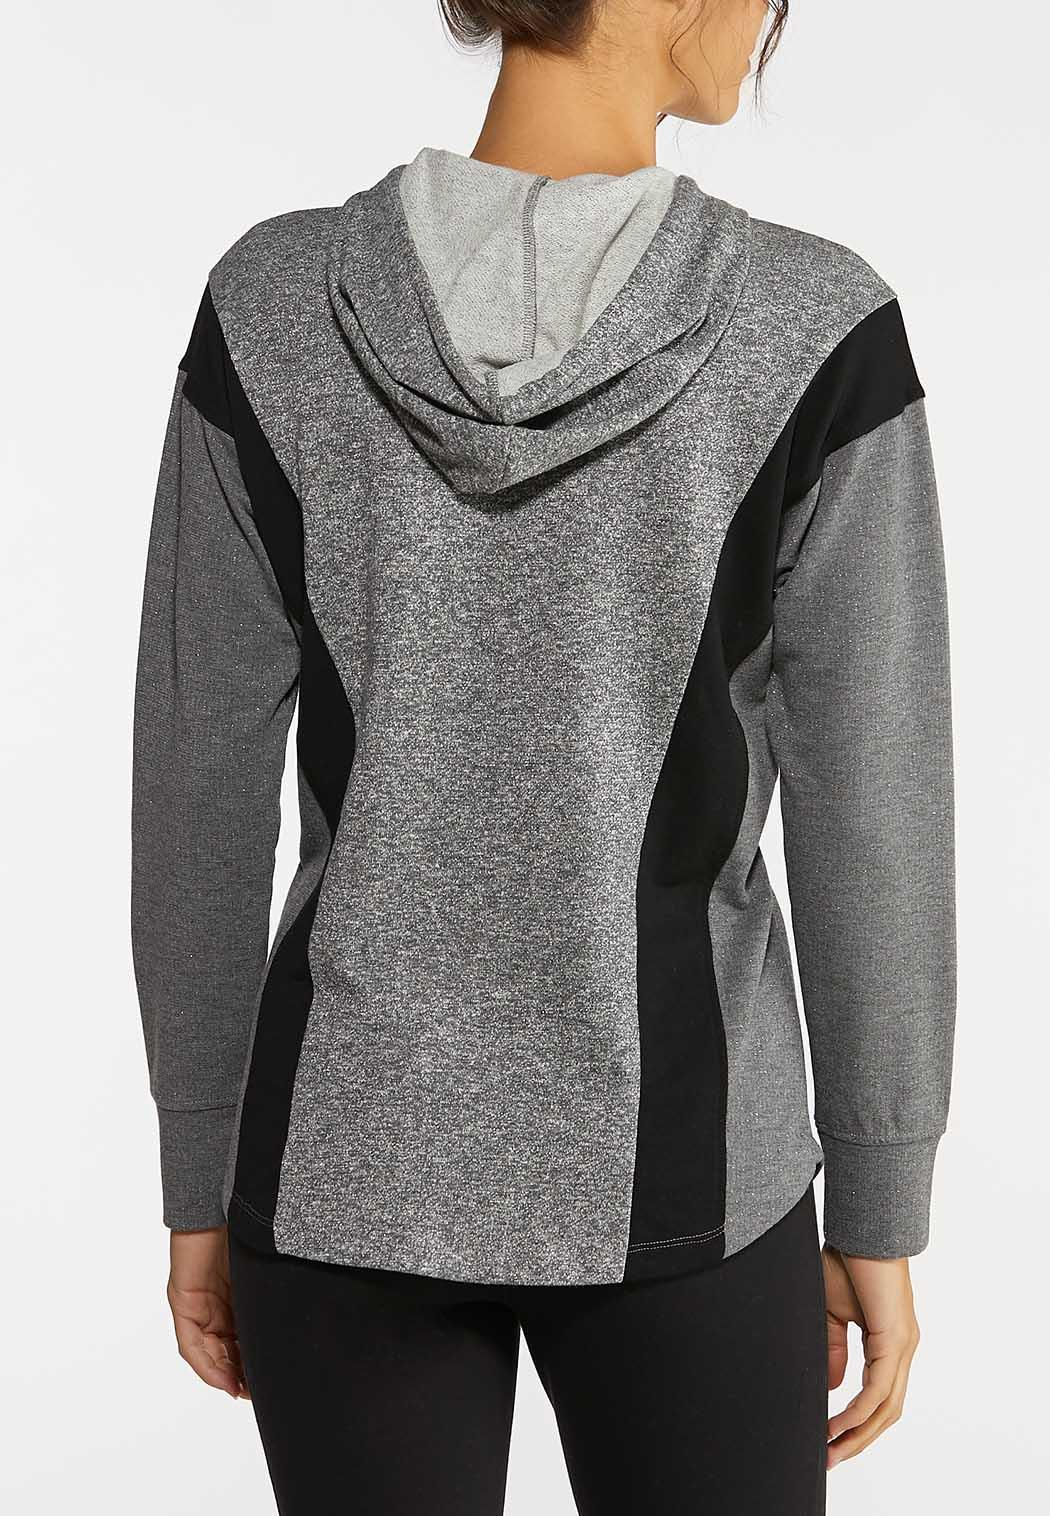 Gray Athleisure Hooded Top (Item #44042086)